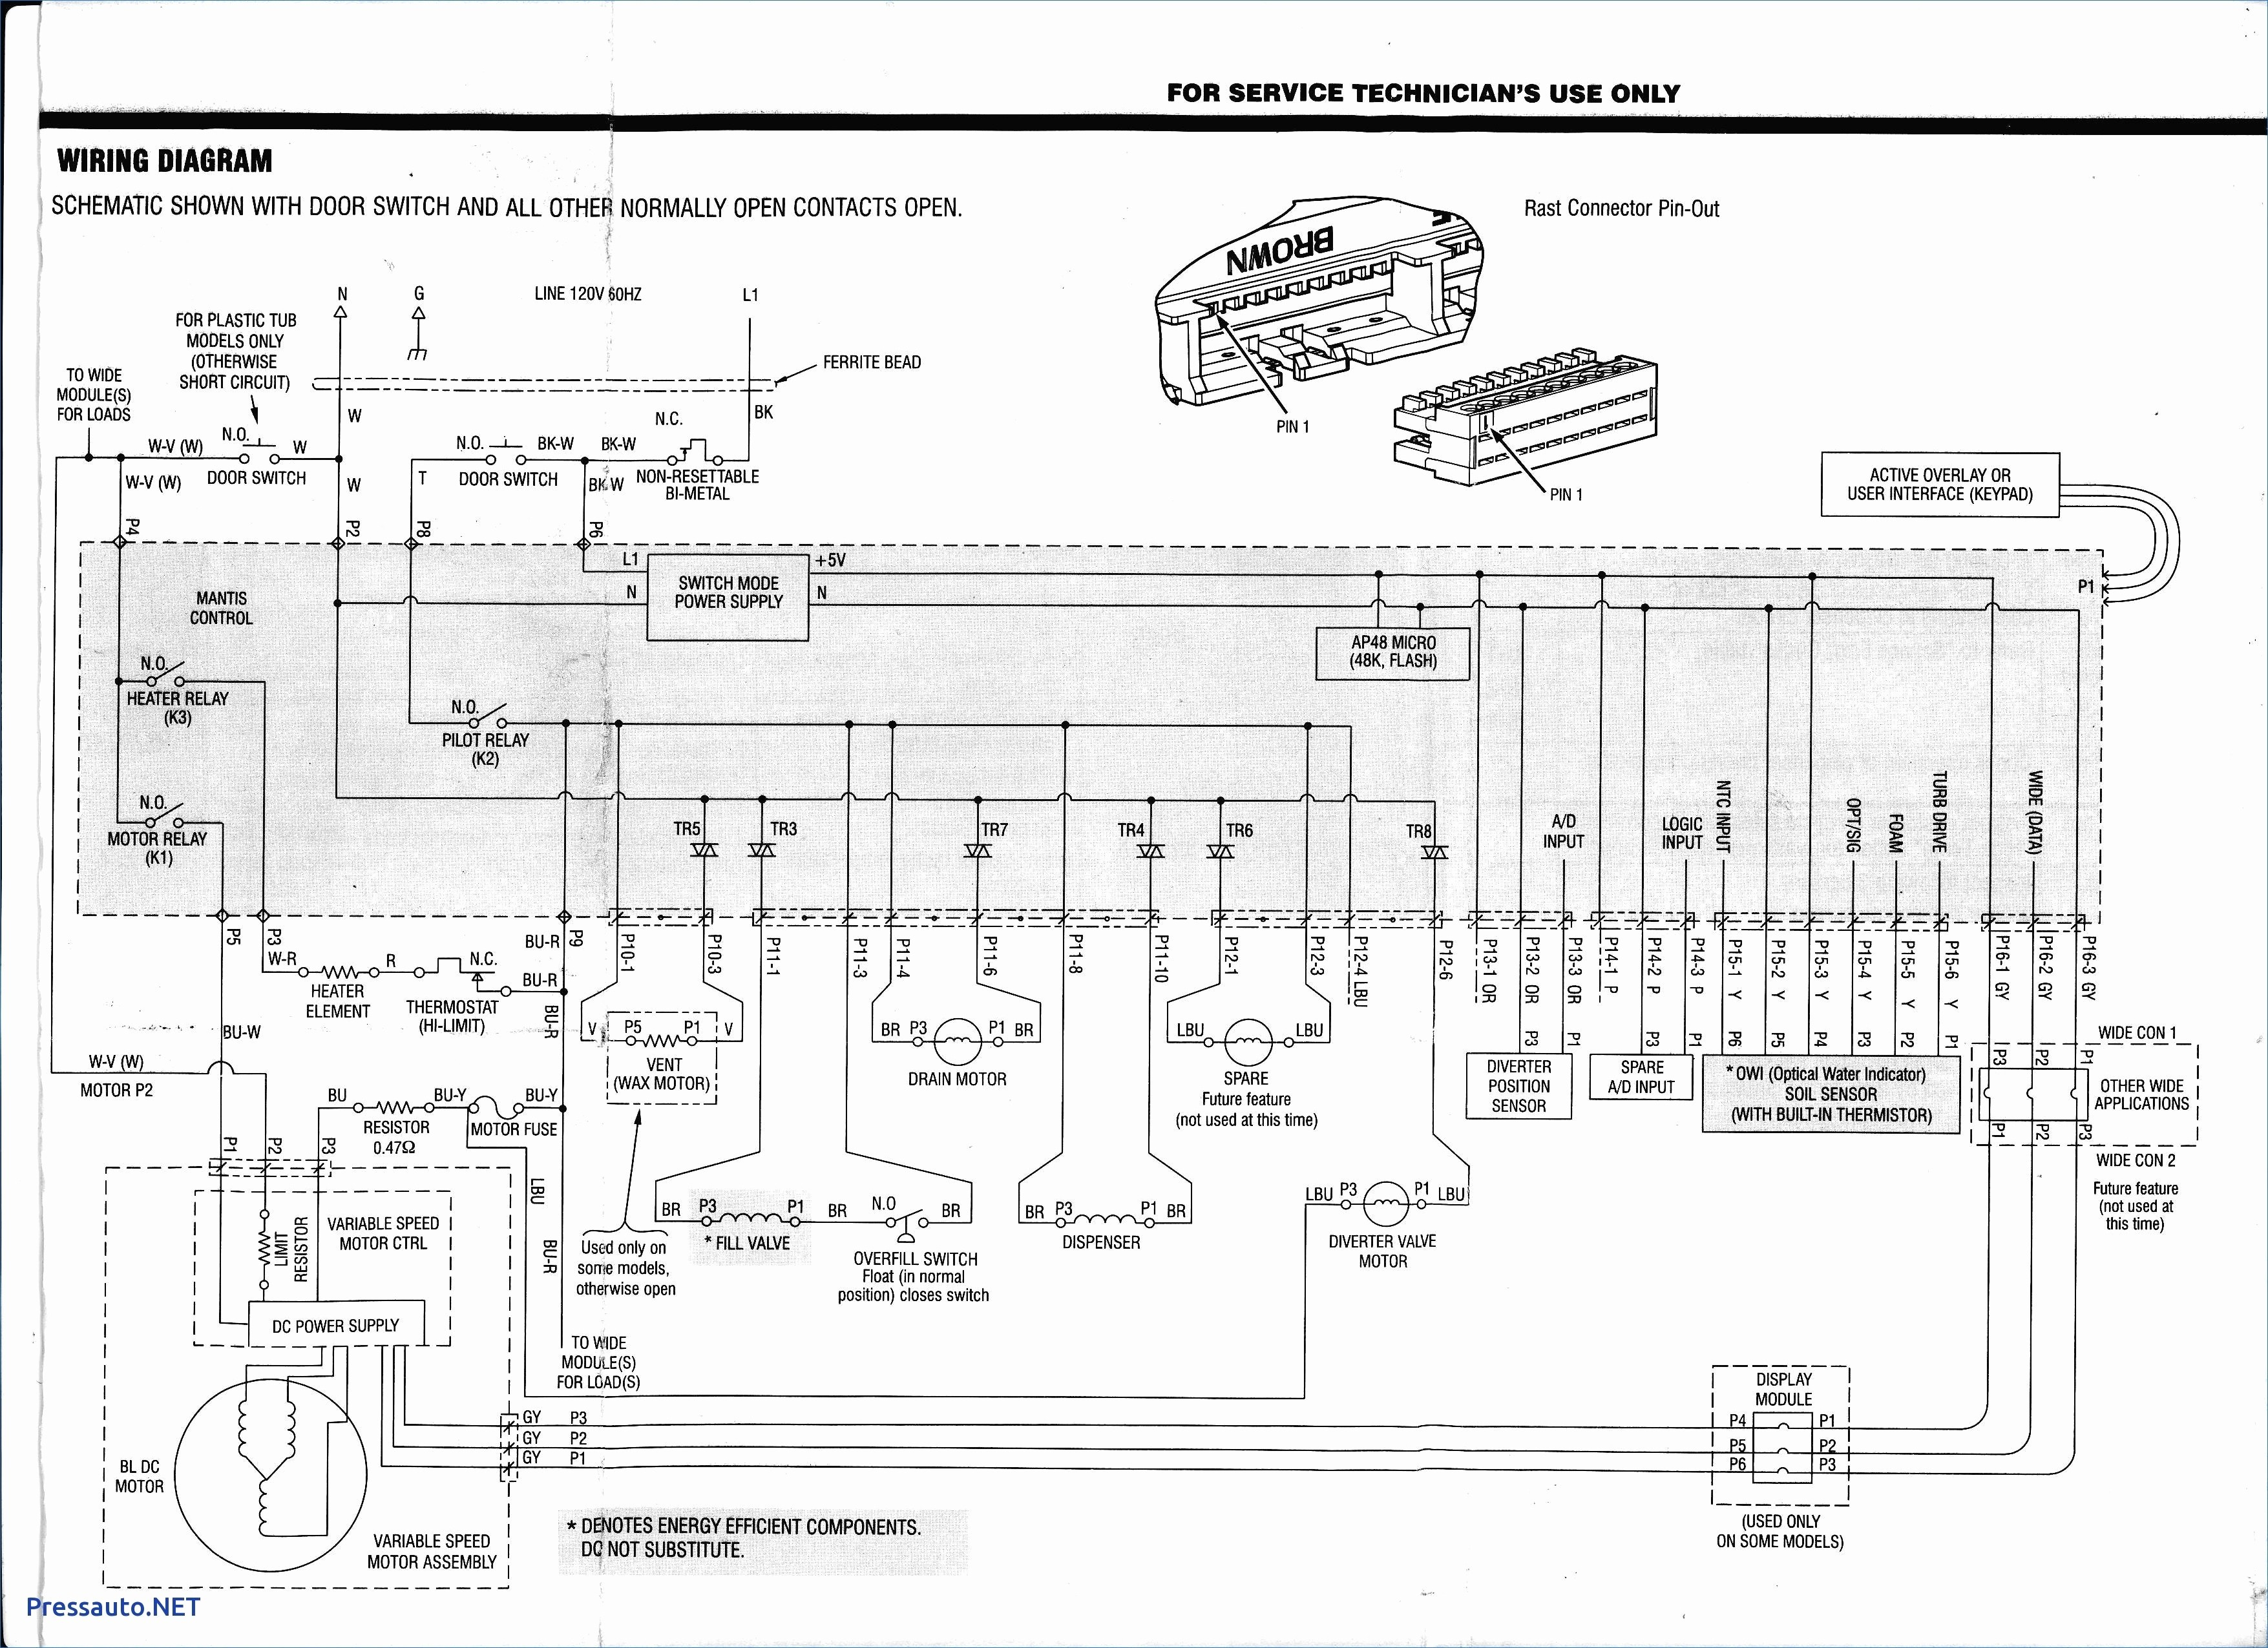 Whirlpool Dryer Wed5100Vq1 Wiring Diagram | Manual E-Books - Whirlpool Dryer Wiring Diagram